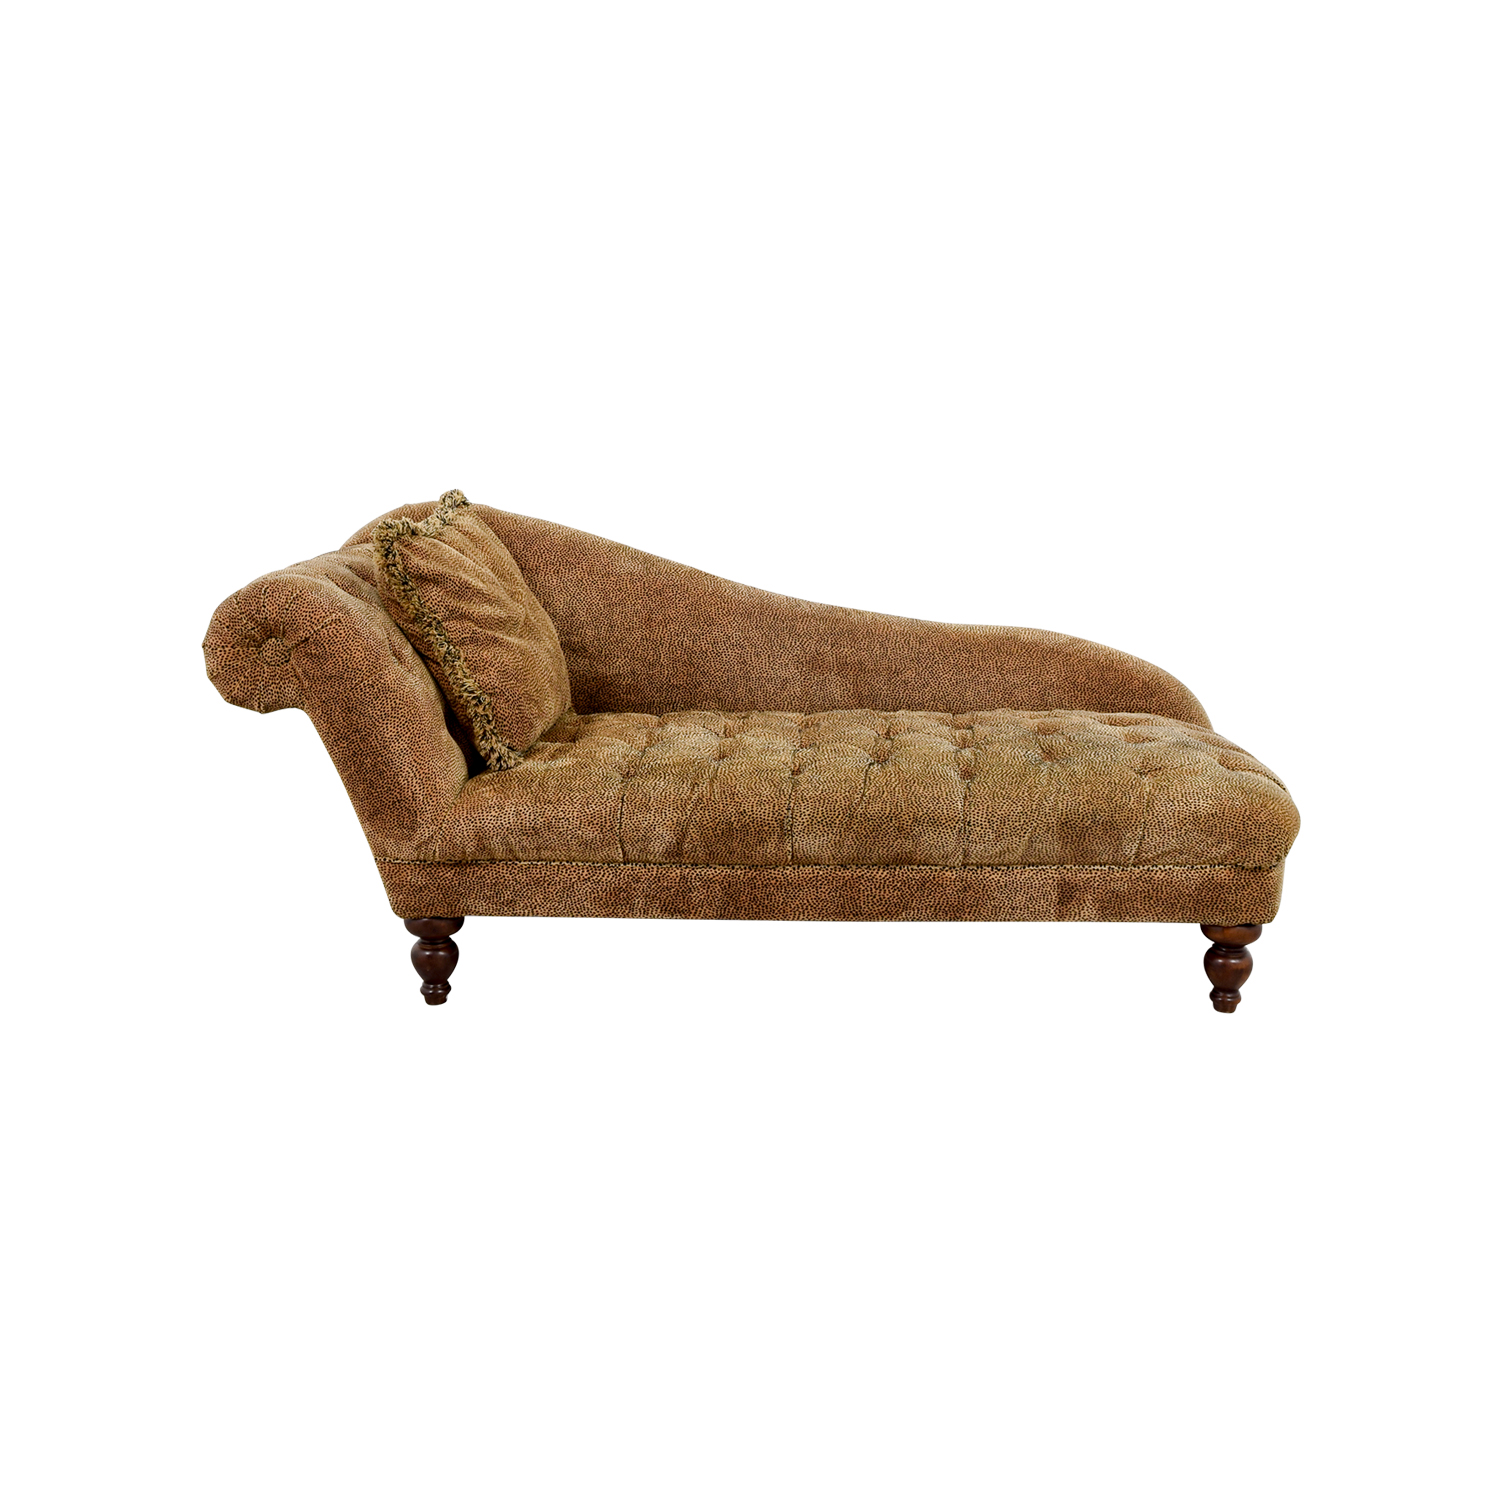 Amazing 73 Off Domain Home Domain Home Furnishings Leopard Chaise Lounge Sofas Andrewgaddart Wooden Chair Designs For Living Room Andrewgaddartcom